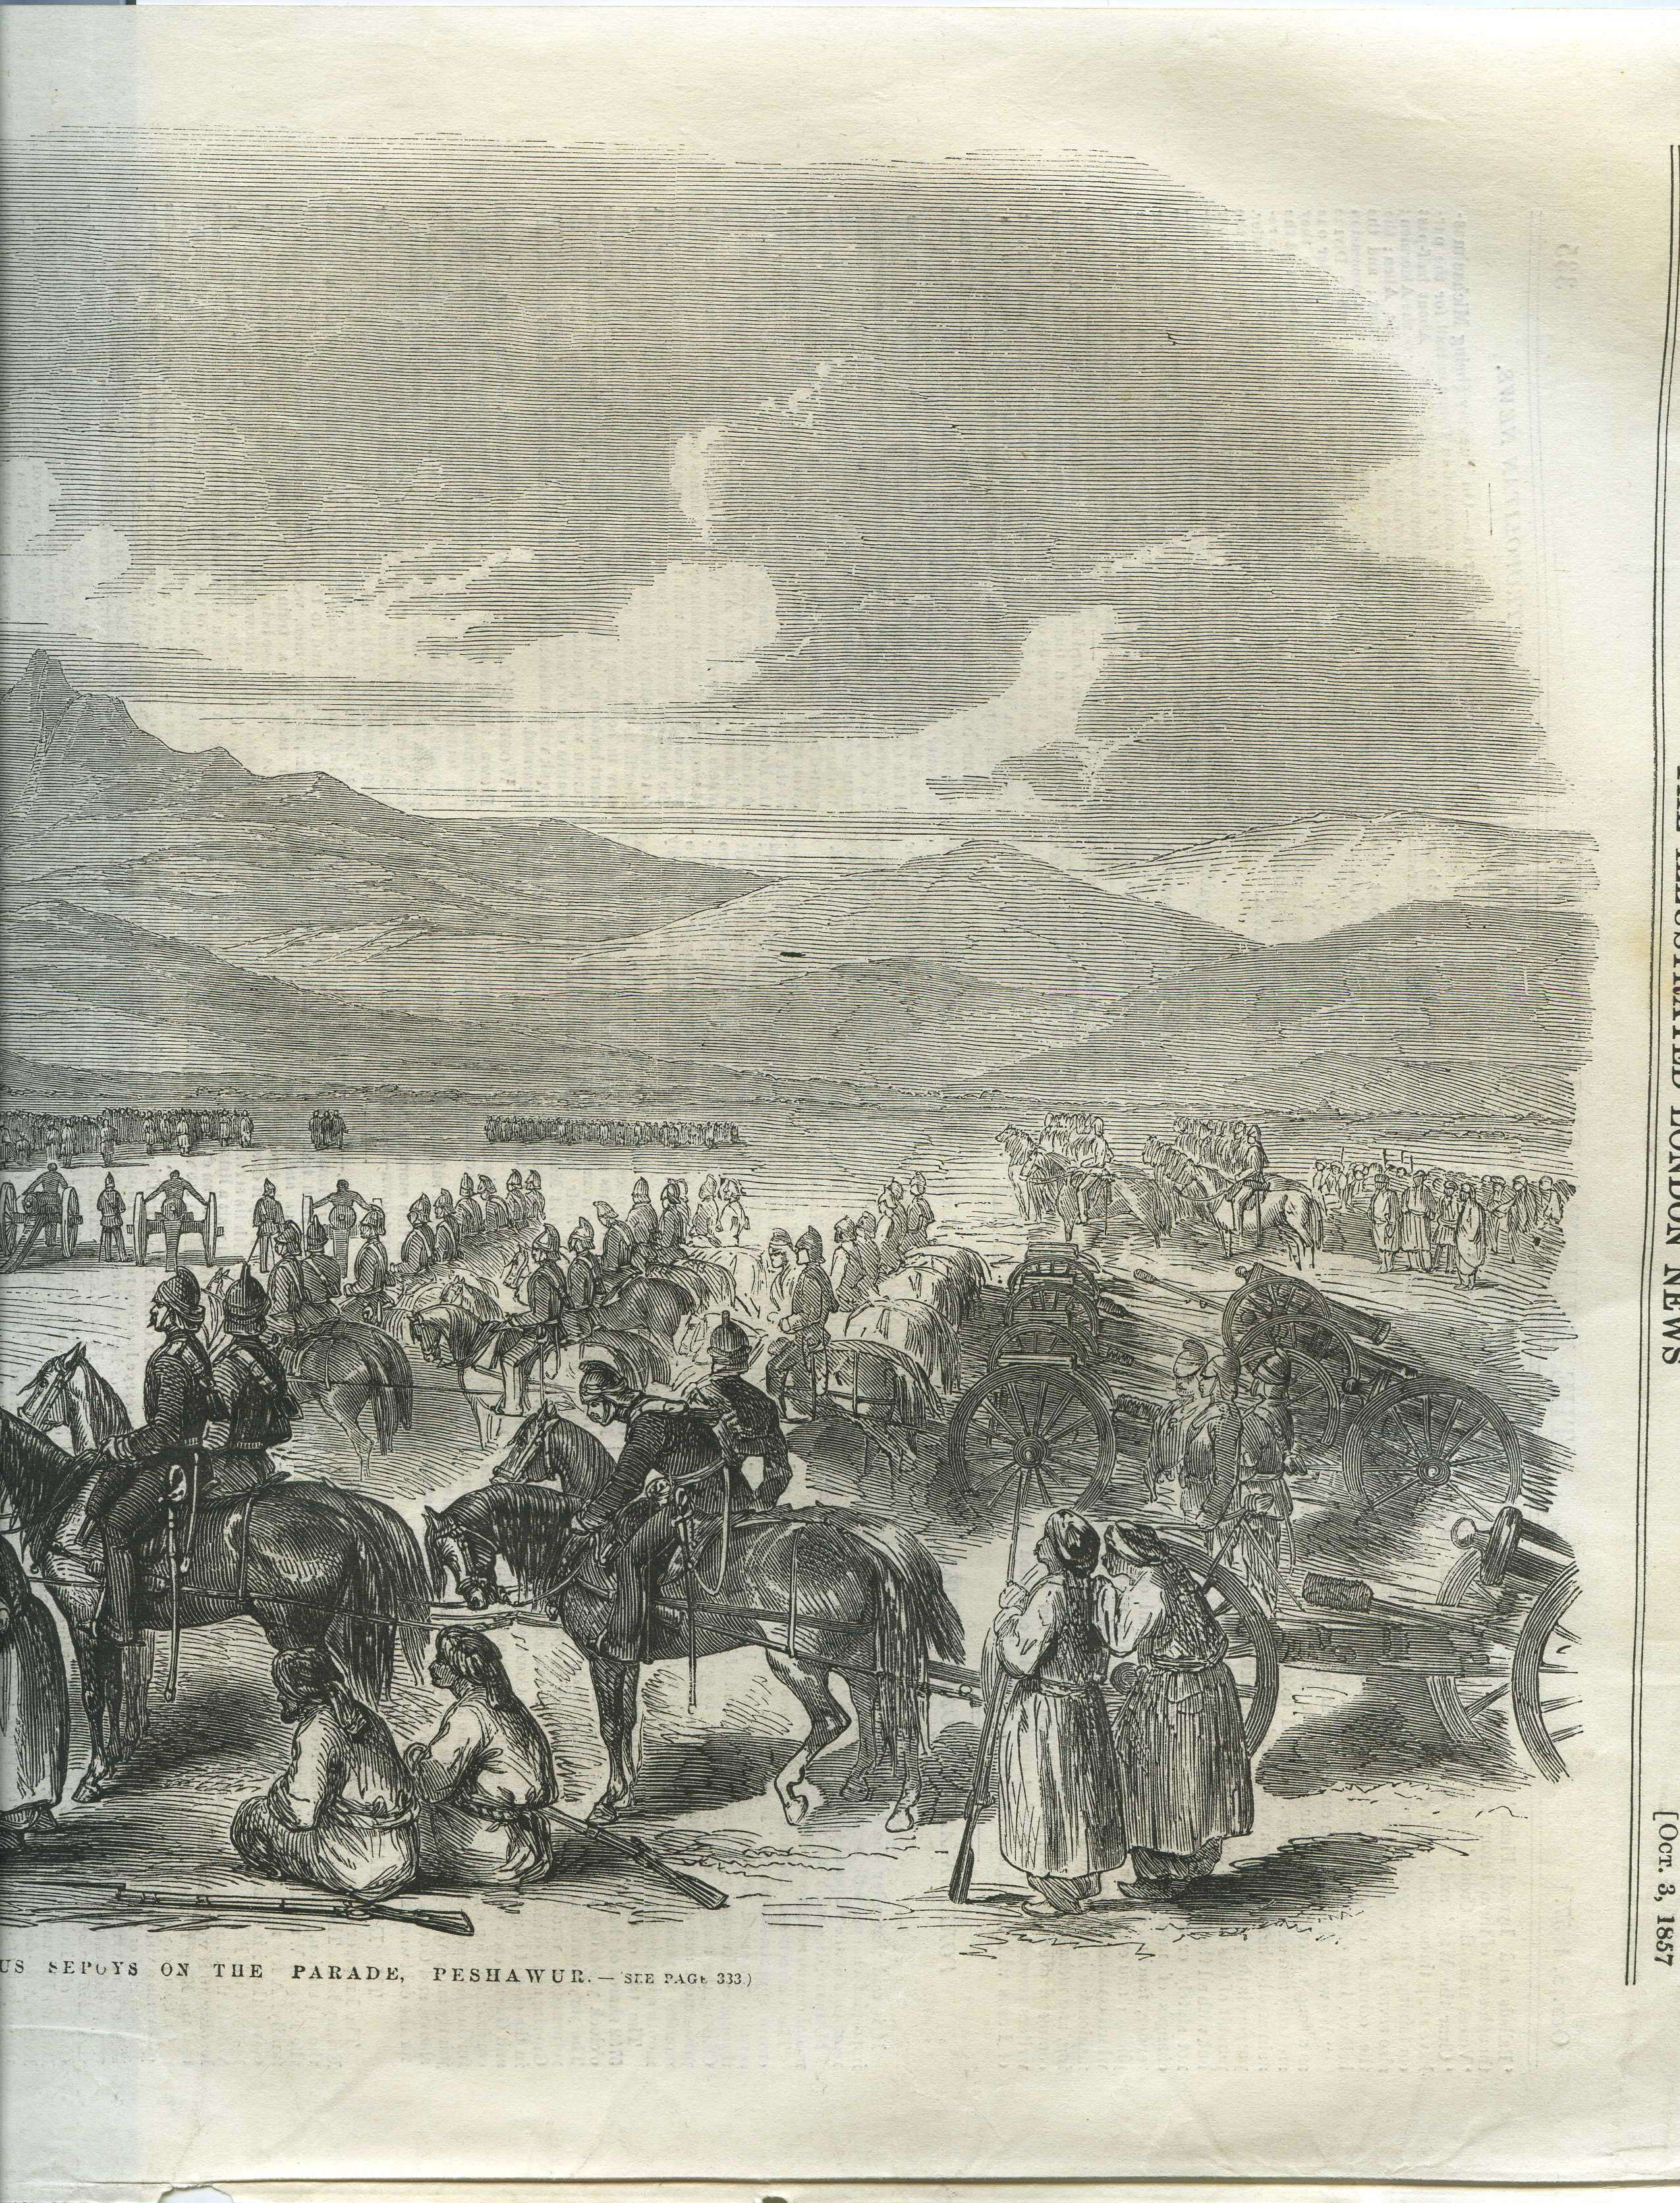 ... Illustrated London News, 1857; click on the image for a very large